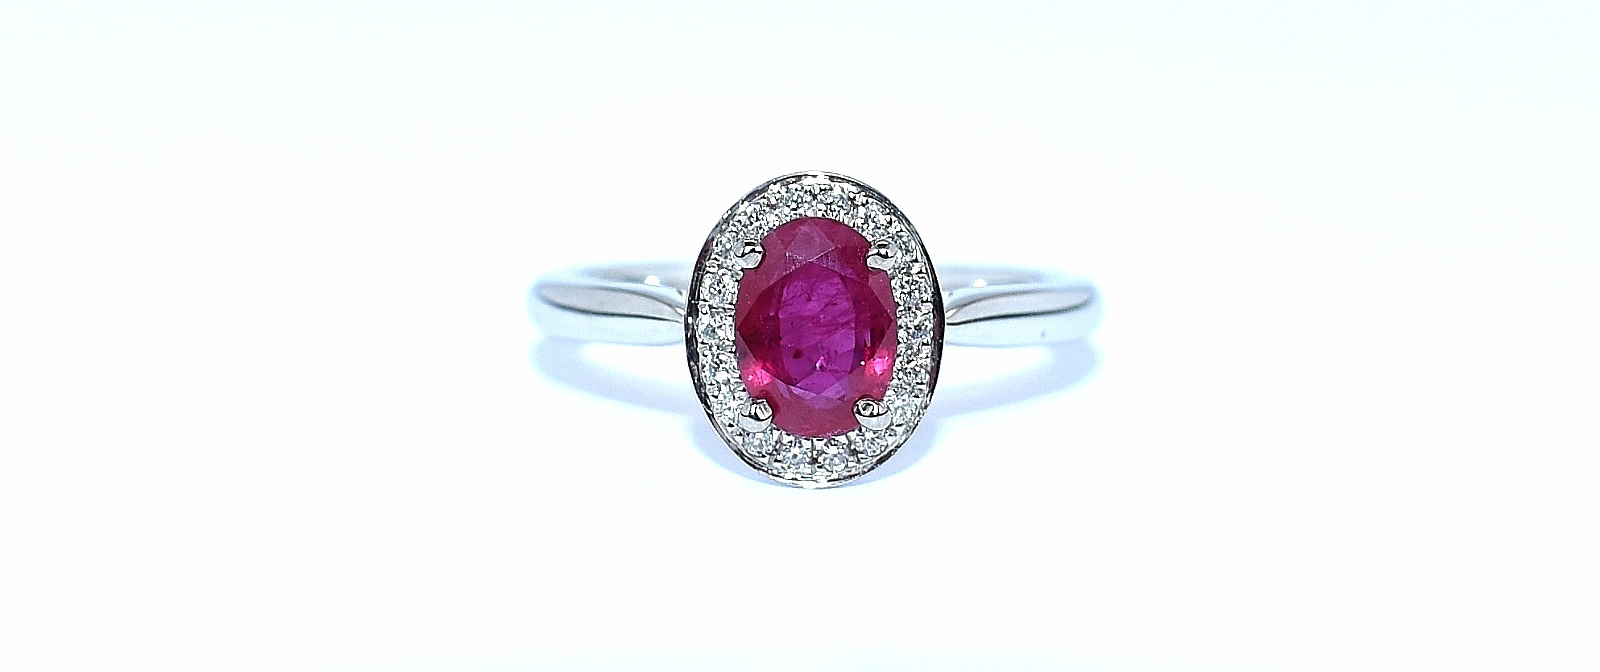 18ct white gold oval ruby and diamond cluster ring